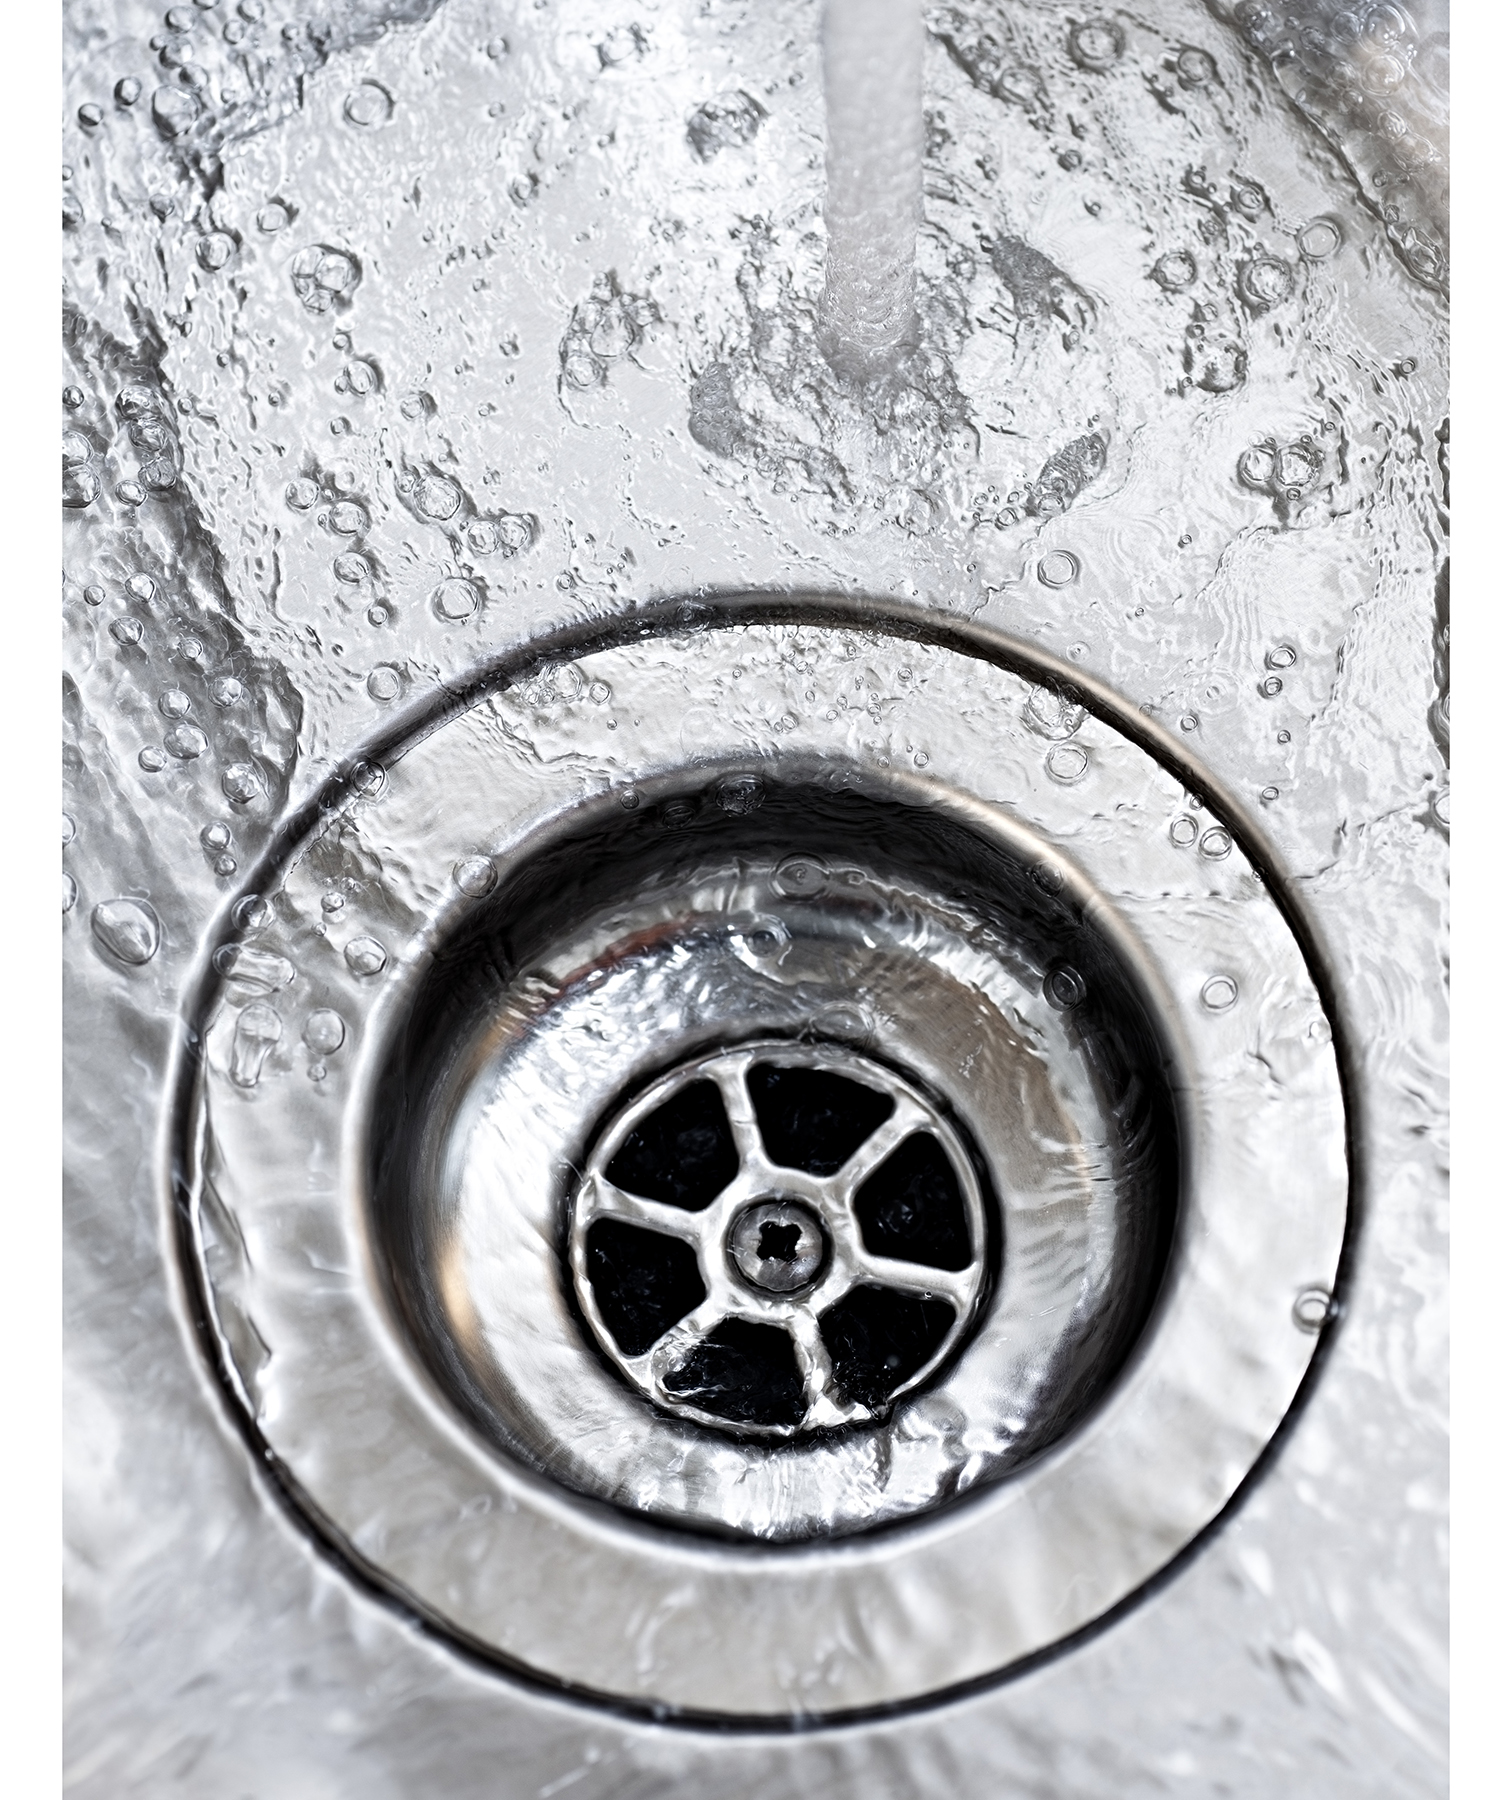 Sink drain with water